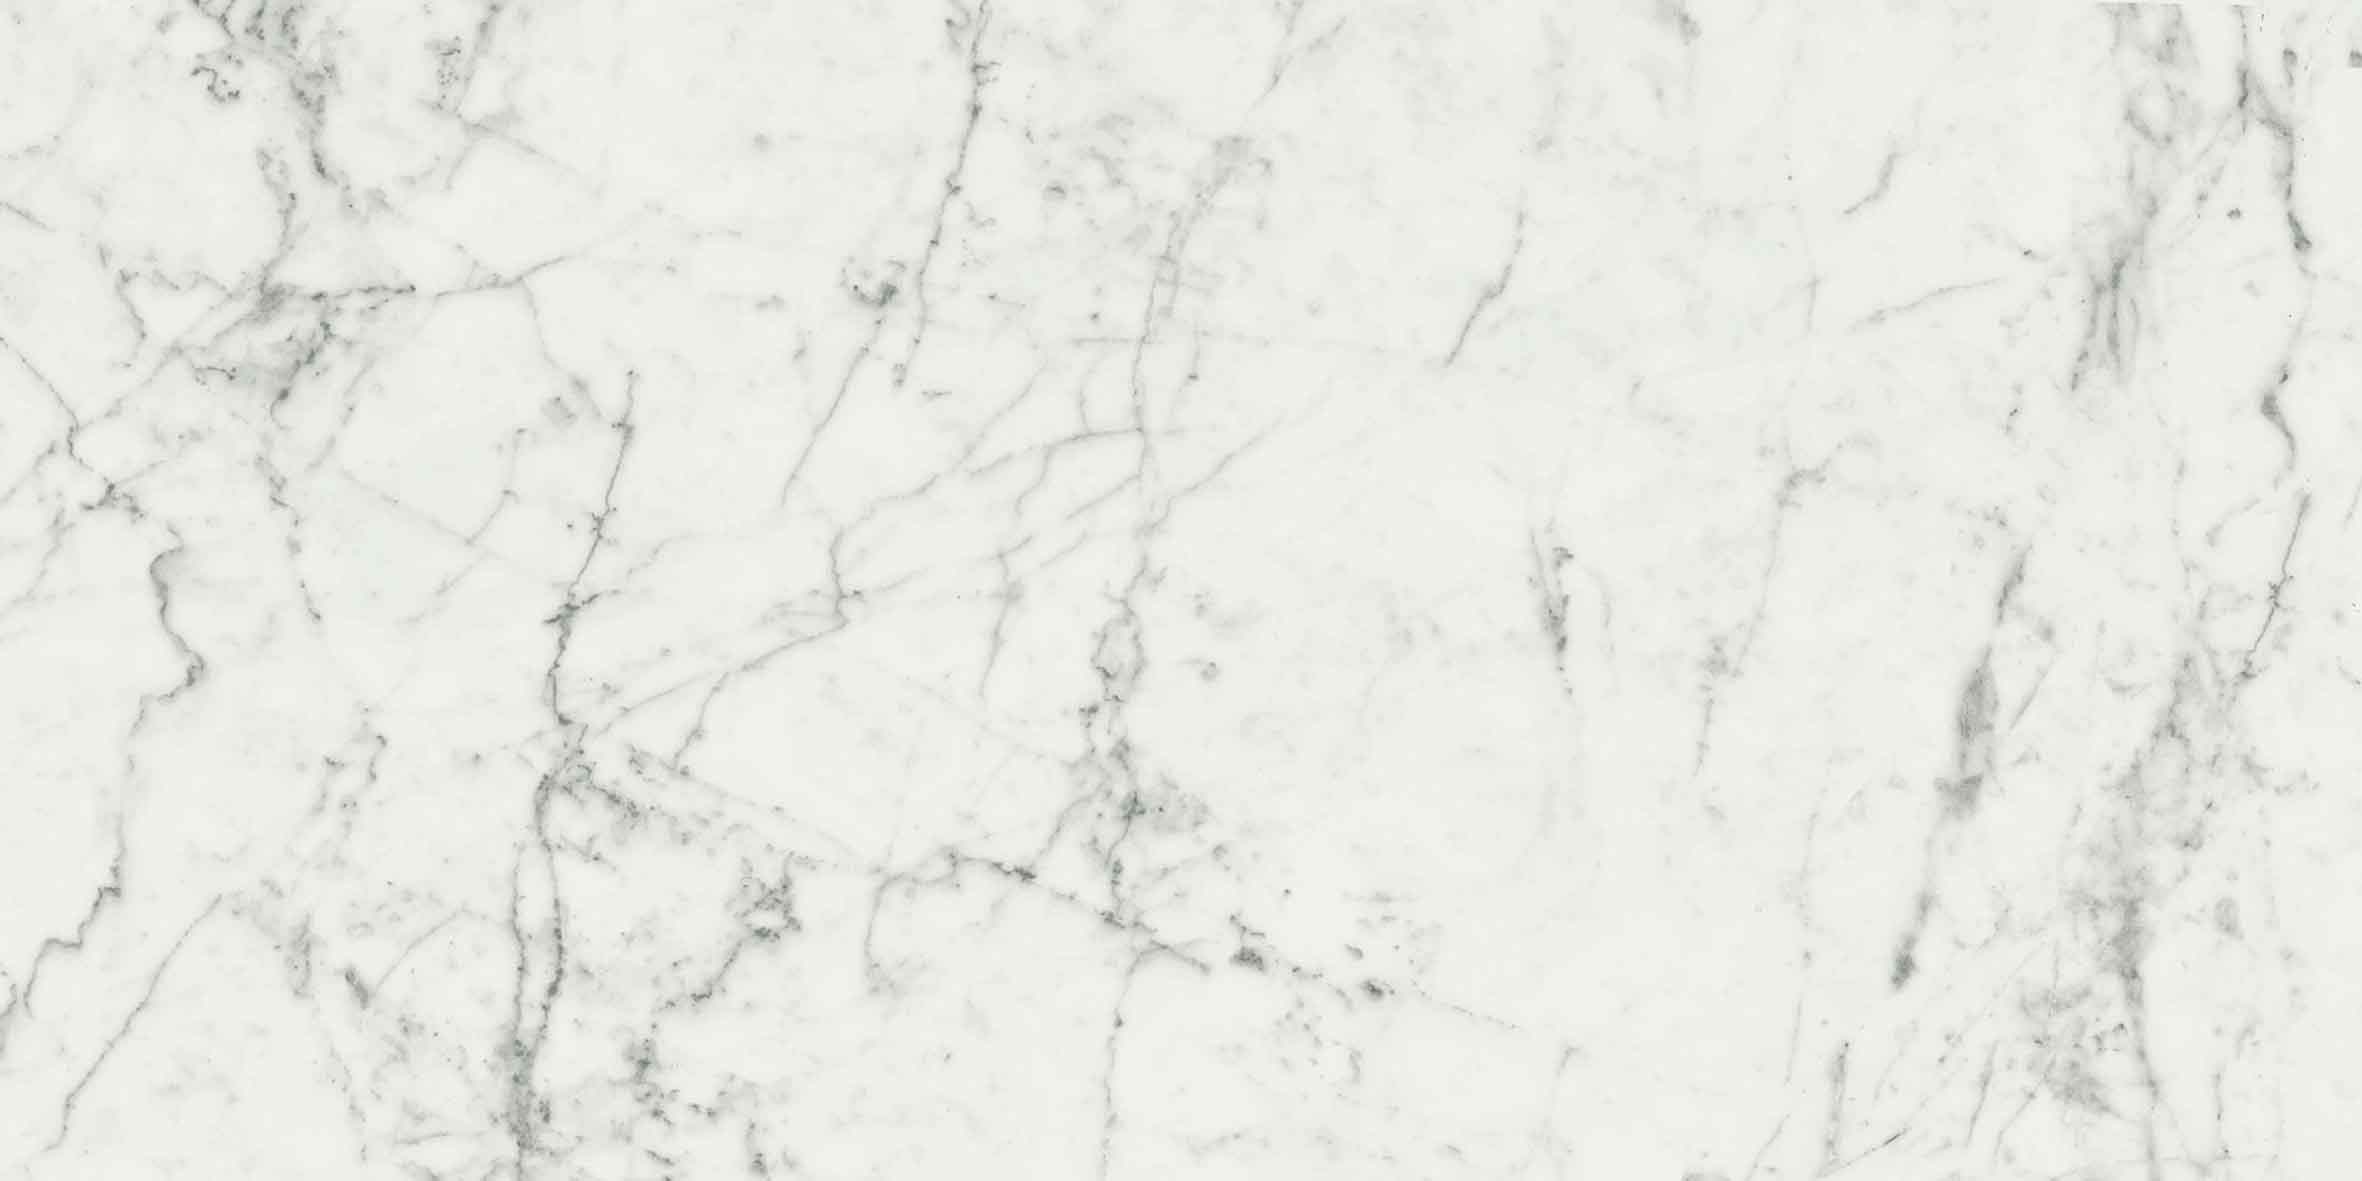 Antique Marble Ghost Marble 01 Glossy 10mm 60 x 120